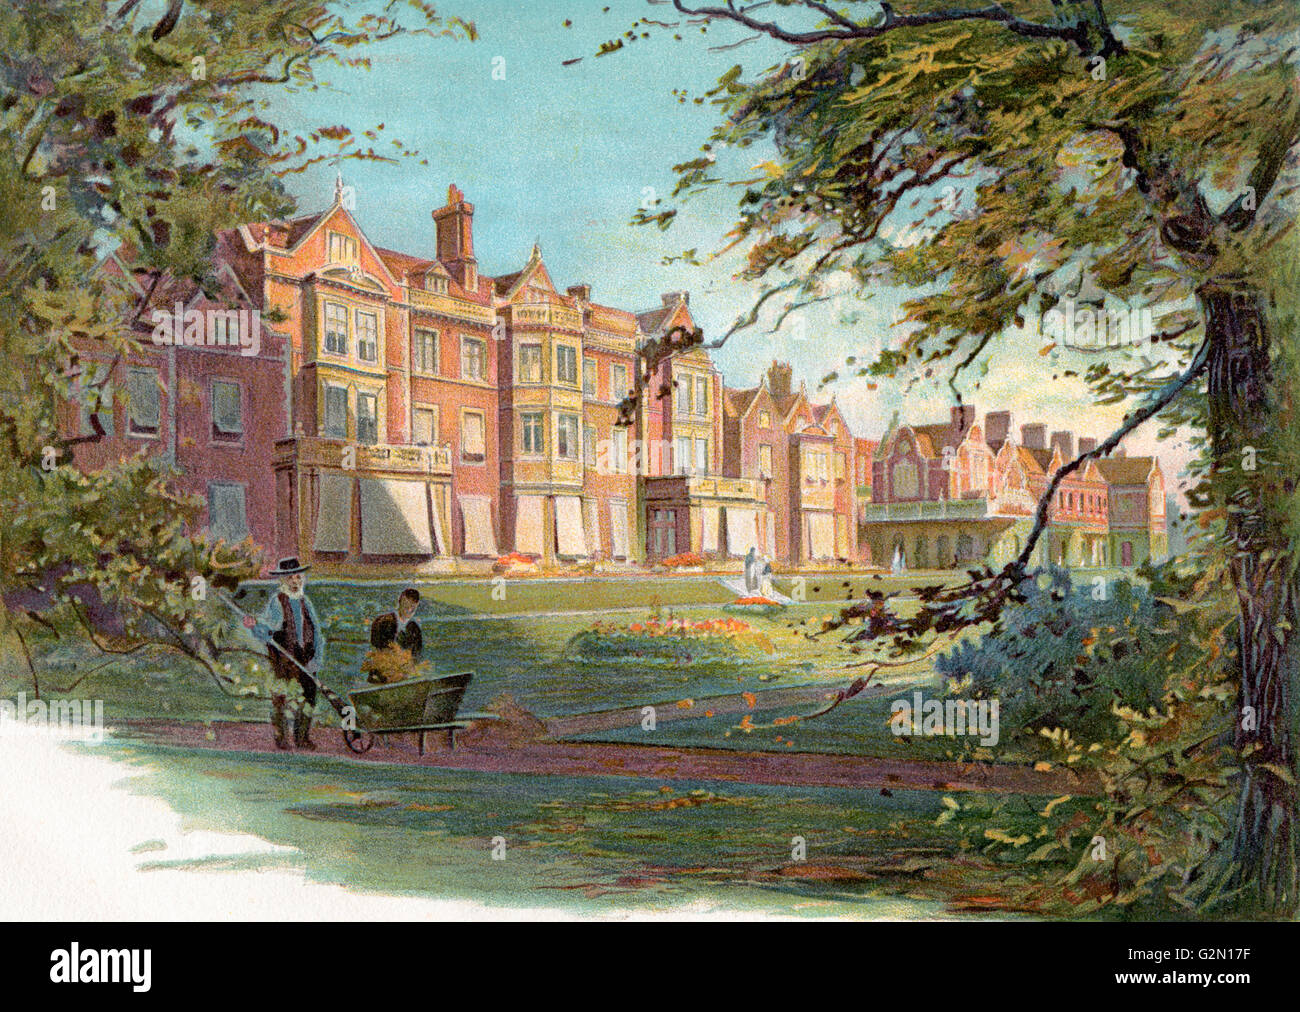 Sandringham House, Norfolk, England in the 19th century.  From The Century Edition of Cassell's History of England, - Stock Image